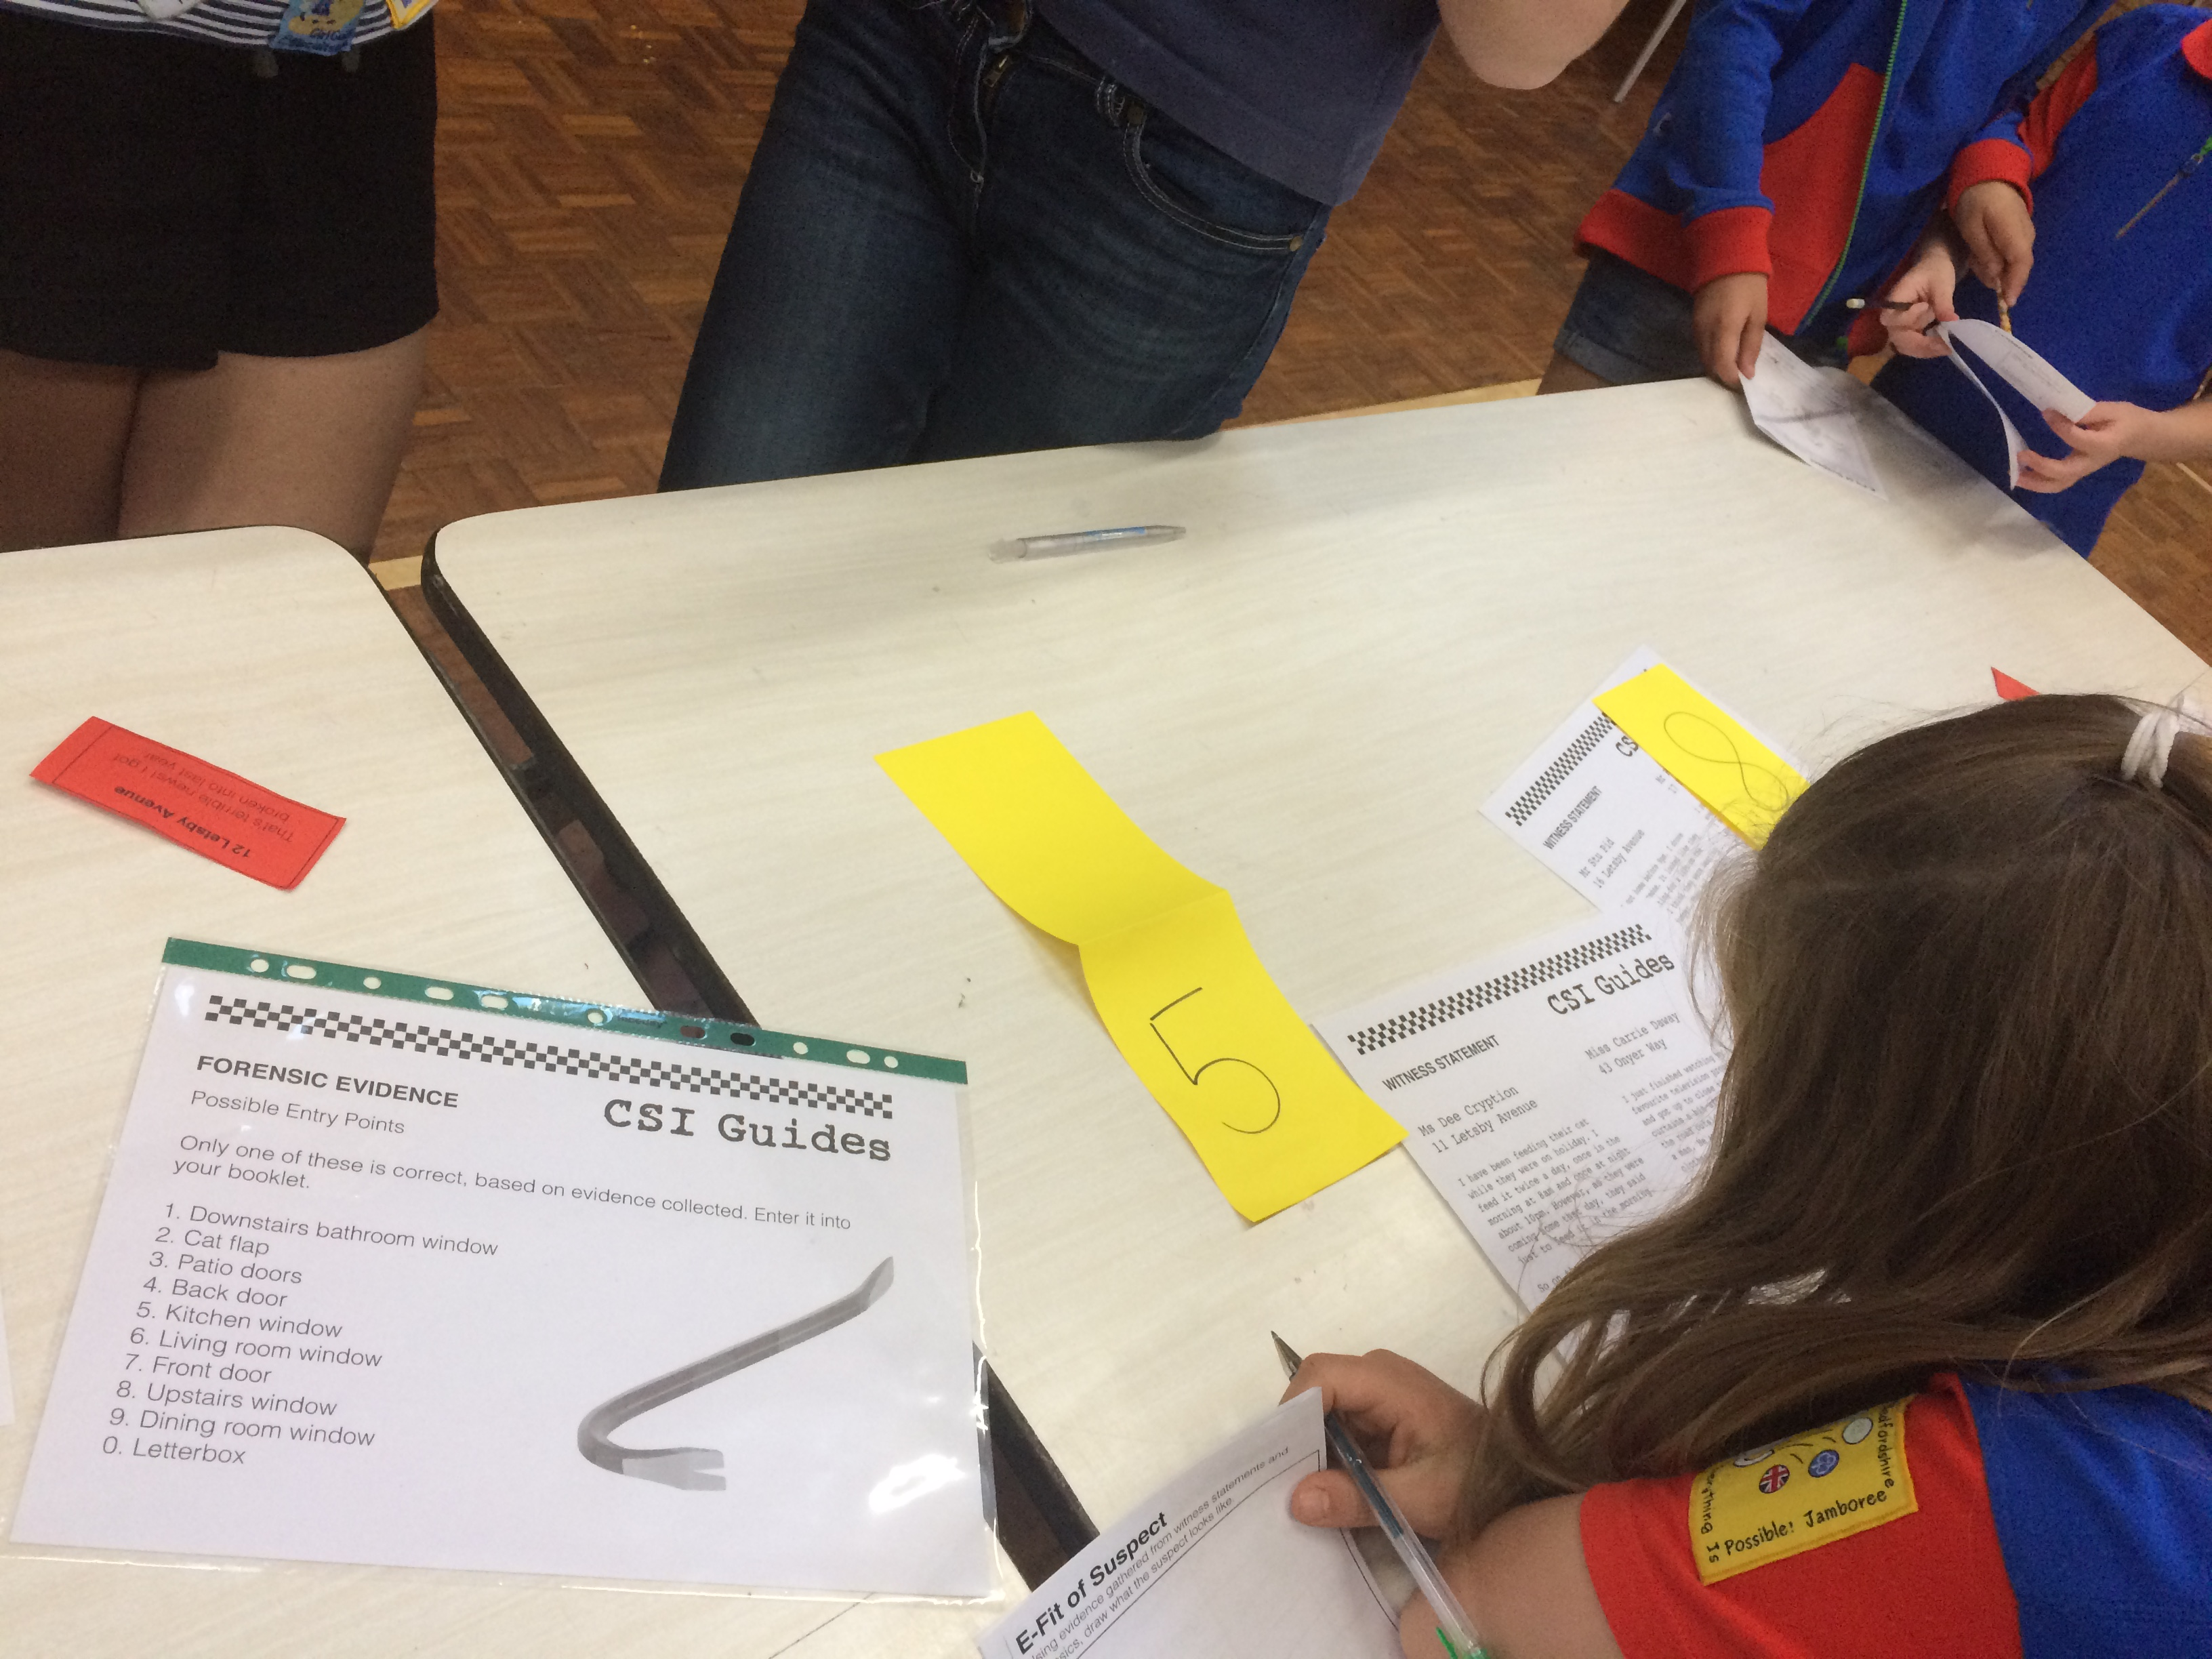 Examining witness statements u2013 the red paper is one of the door-to-door enquiry slips and the yellow paper was meant to be stood up like a tent as an ... & CSI Guides - Burglary Investigation for Kids | Guide Kit